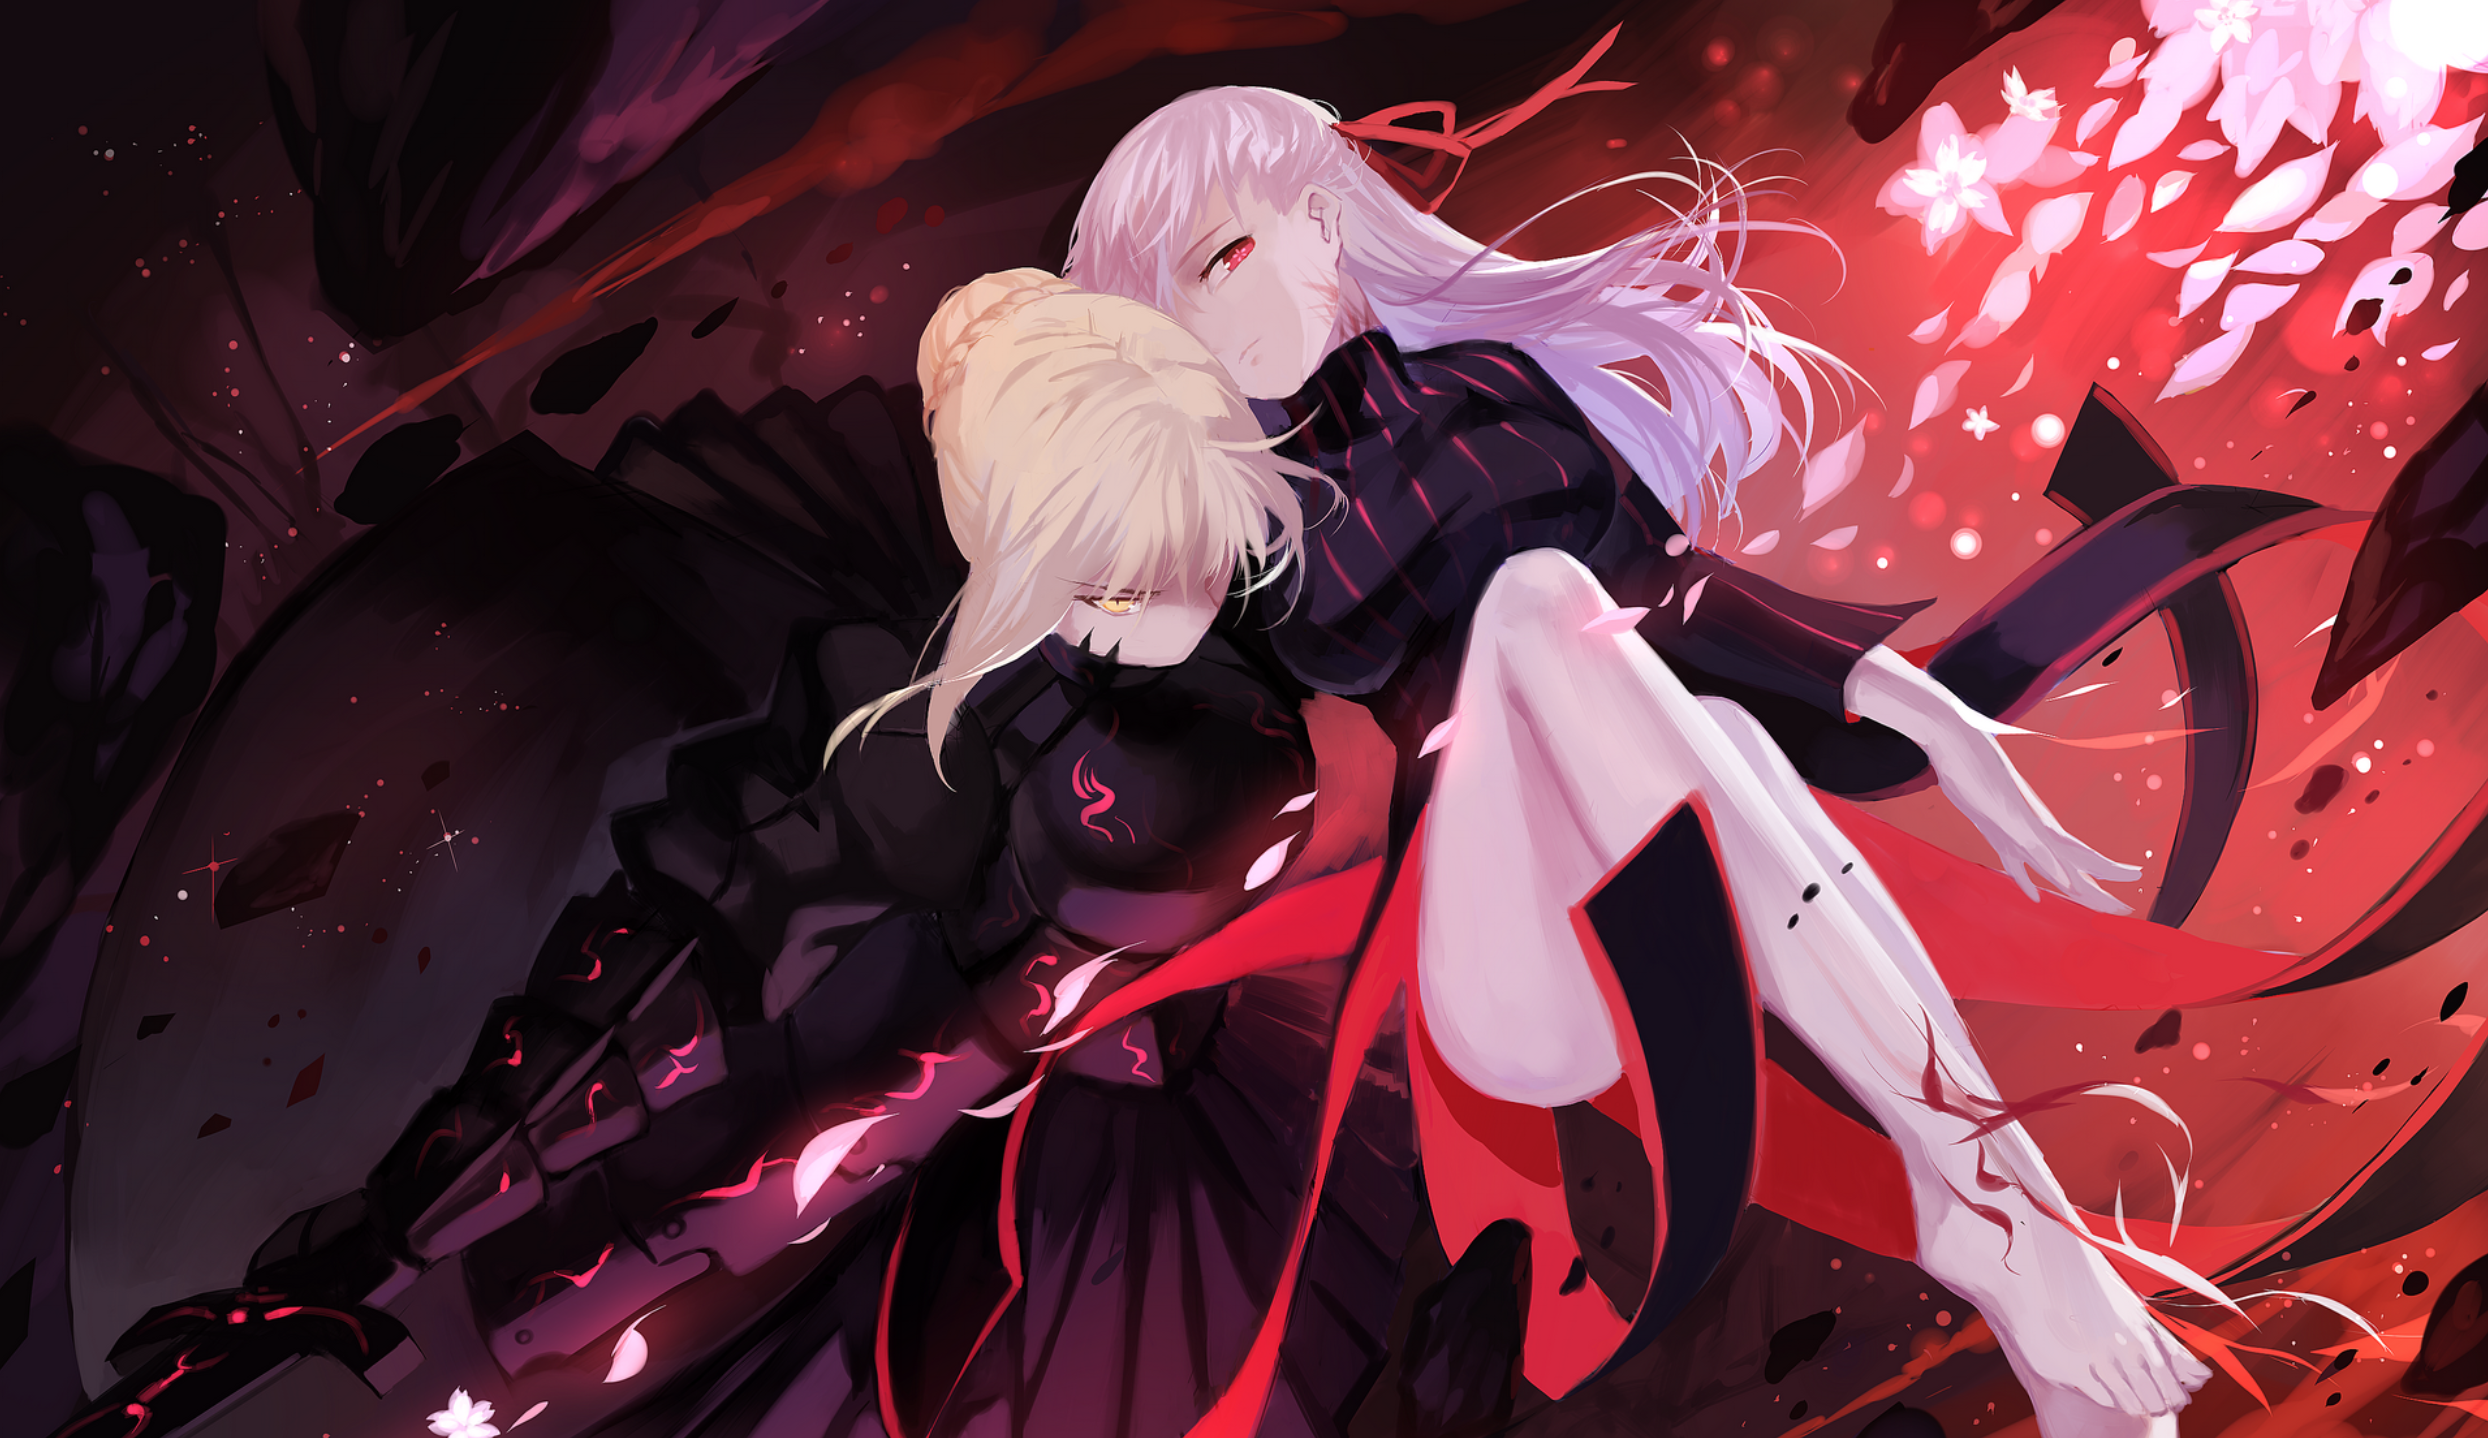 Fate Series Fate Stay Night Anime Fate Stay Night Sakura Anime